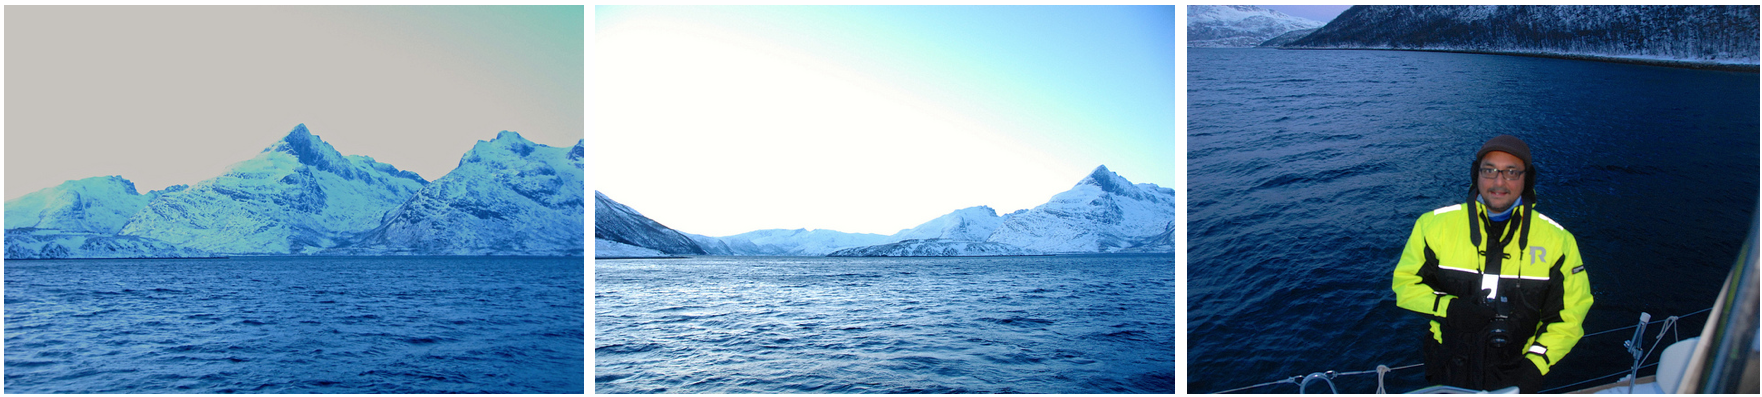 #Whalewatching #Whalesafari #Tromsø | Cold weather